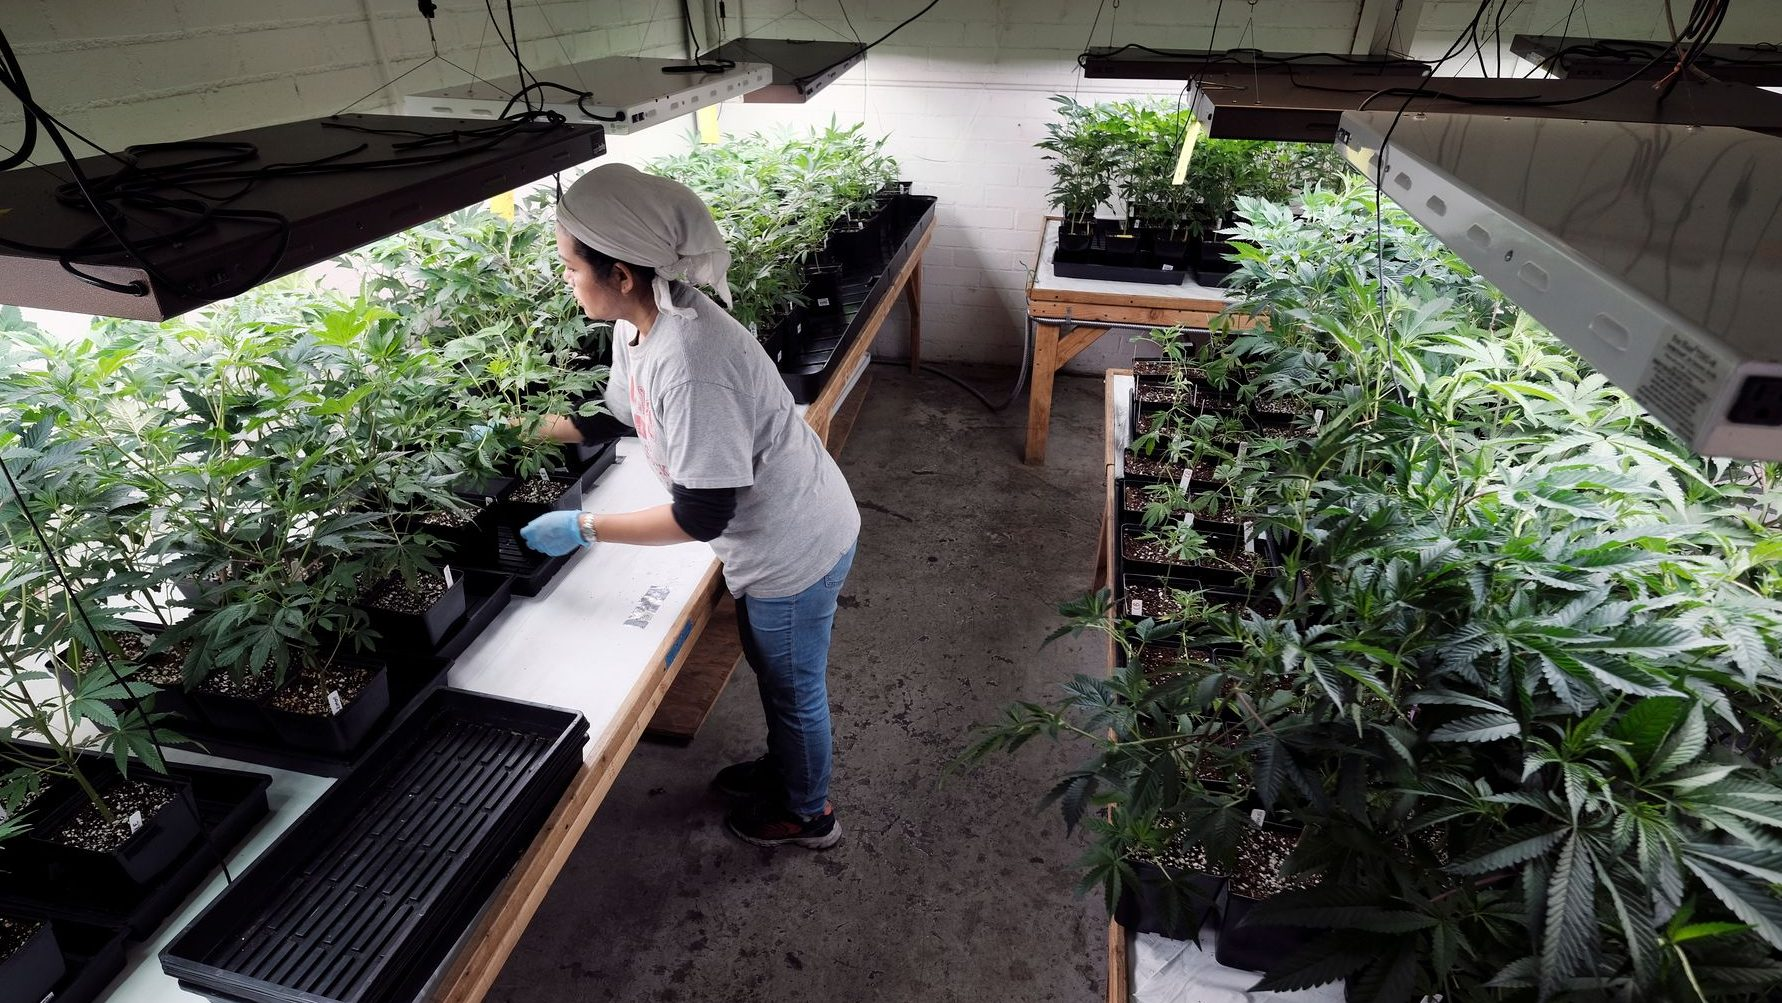 How much do marijuana businesses pay in taxes?